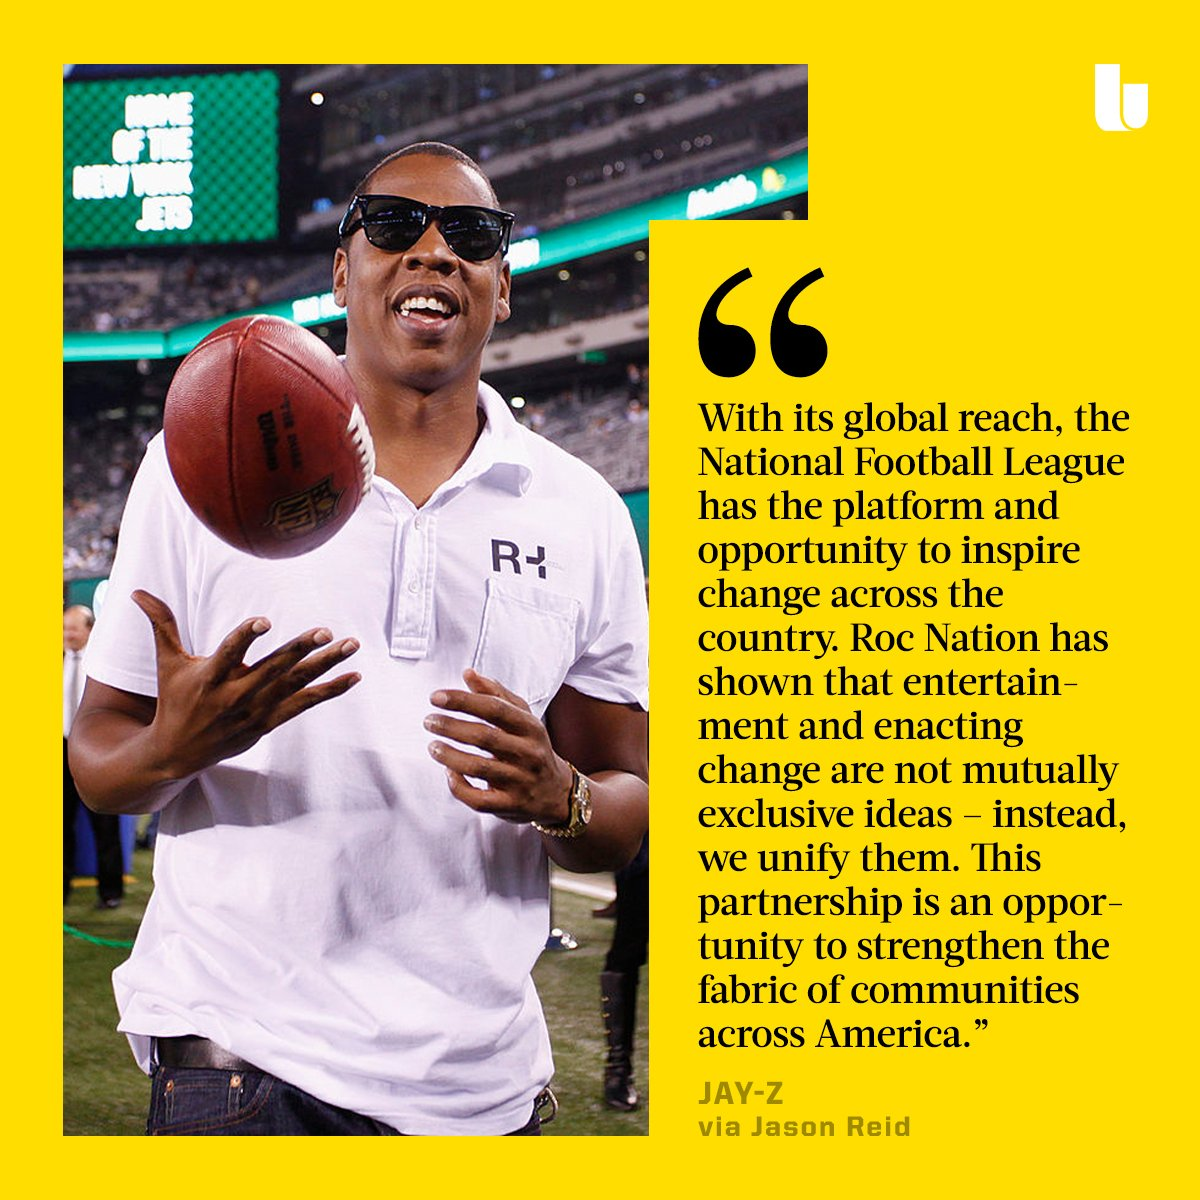 The NFL and Roc Nation have agreed to a long-term partnership.The entertainment company will advise on the selection of artists for NFL tentpole events, including the Super Bowl, as well as play a key role in the production and promotion of new music: https://www.espn.com/nfl/story/_/id/27380099/roc-nation-lead-nfl-entertainment-endeavors…